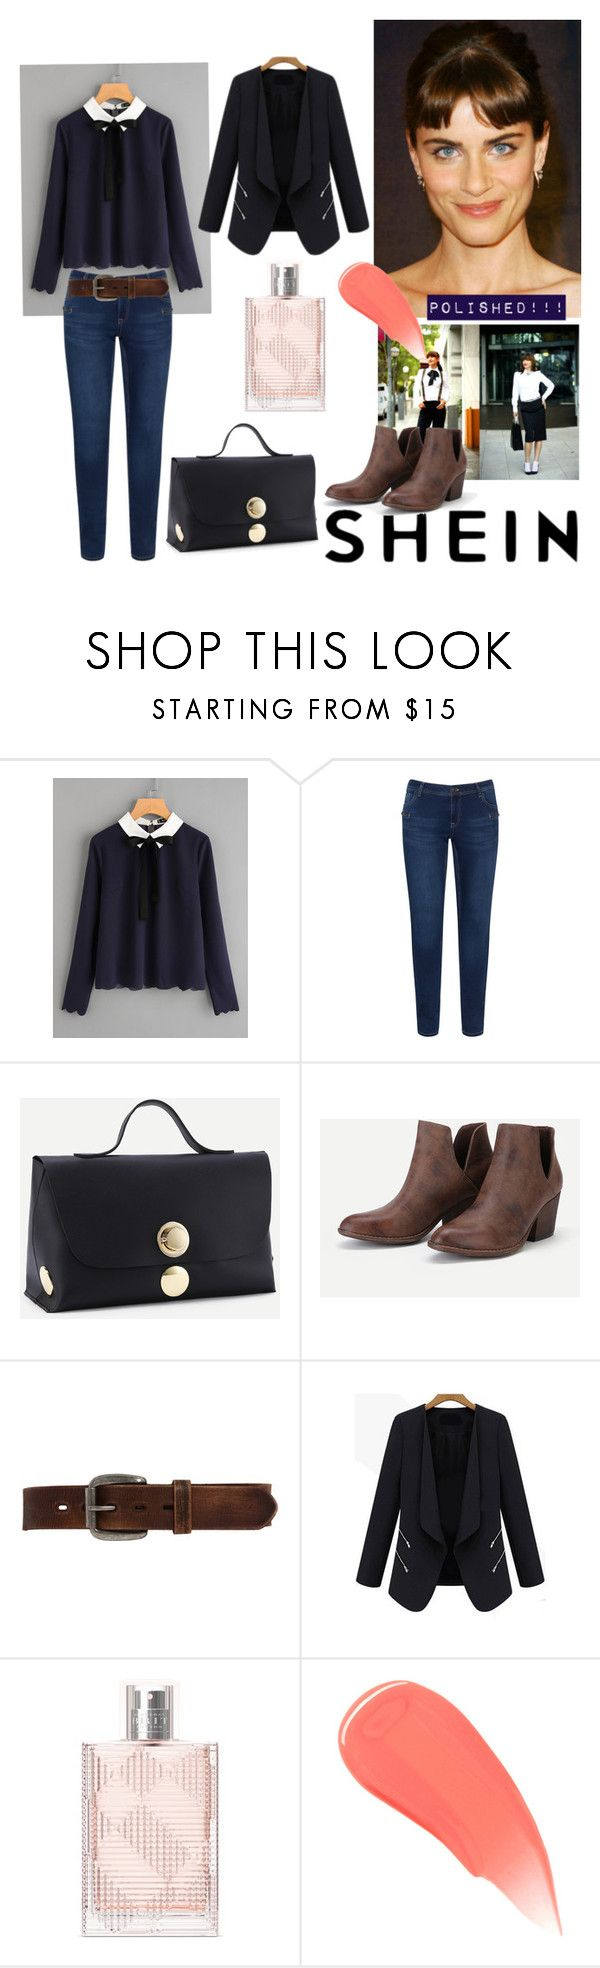 POLISHED PREP by paisleyvelvetandlace on Polyvore featuring Zizzi, Bed|Stü and Burberry